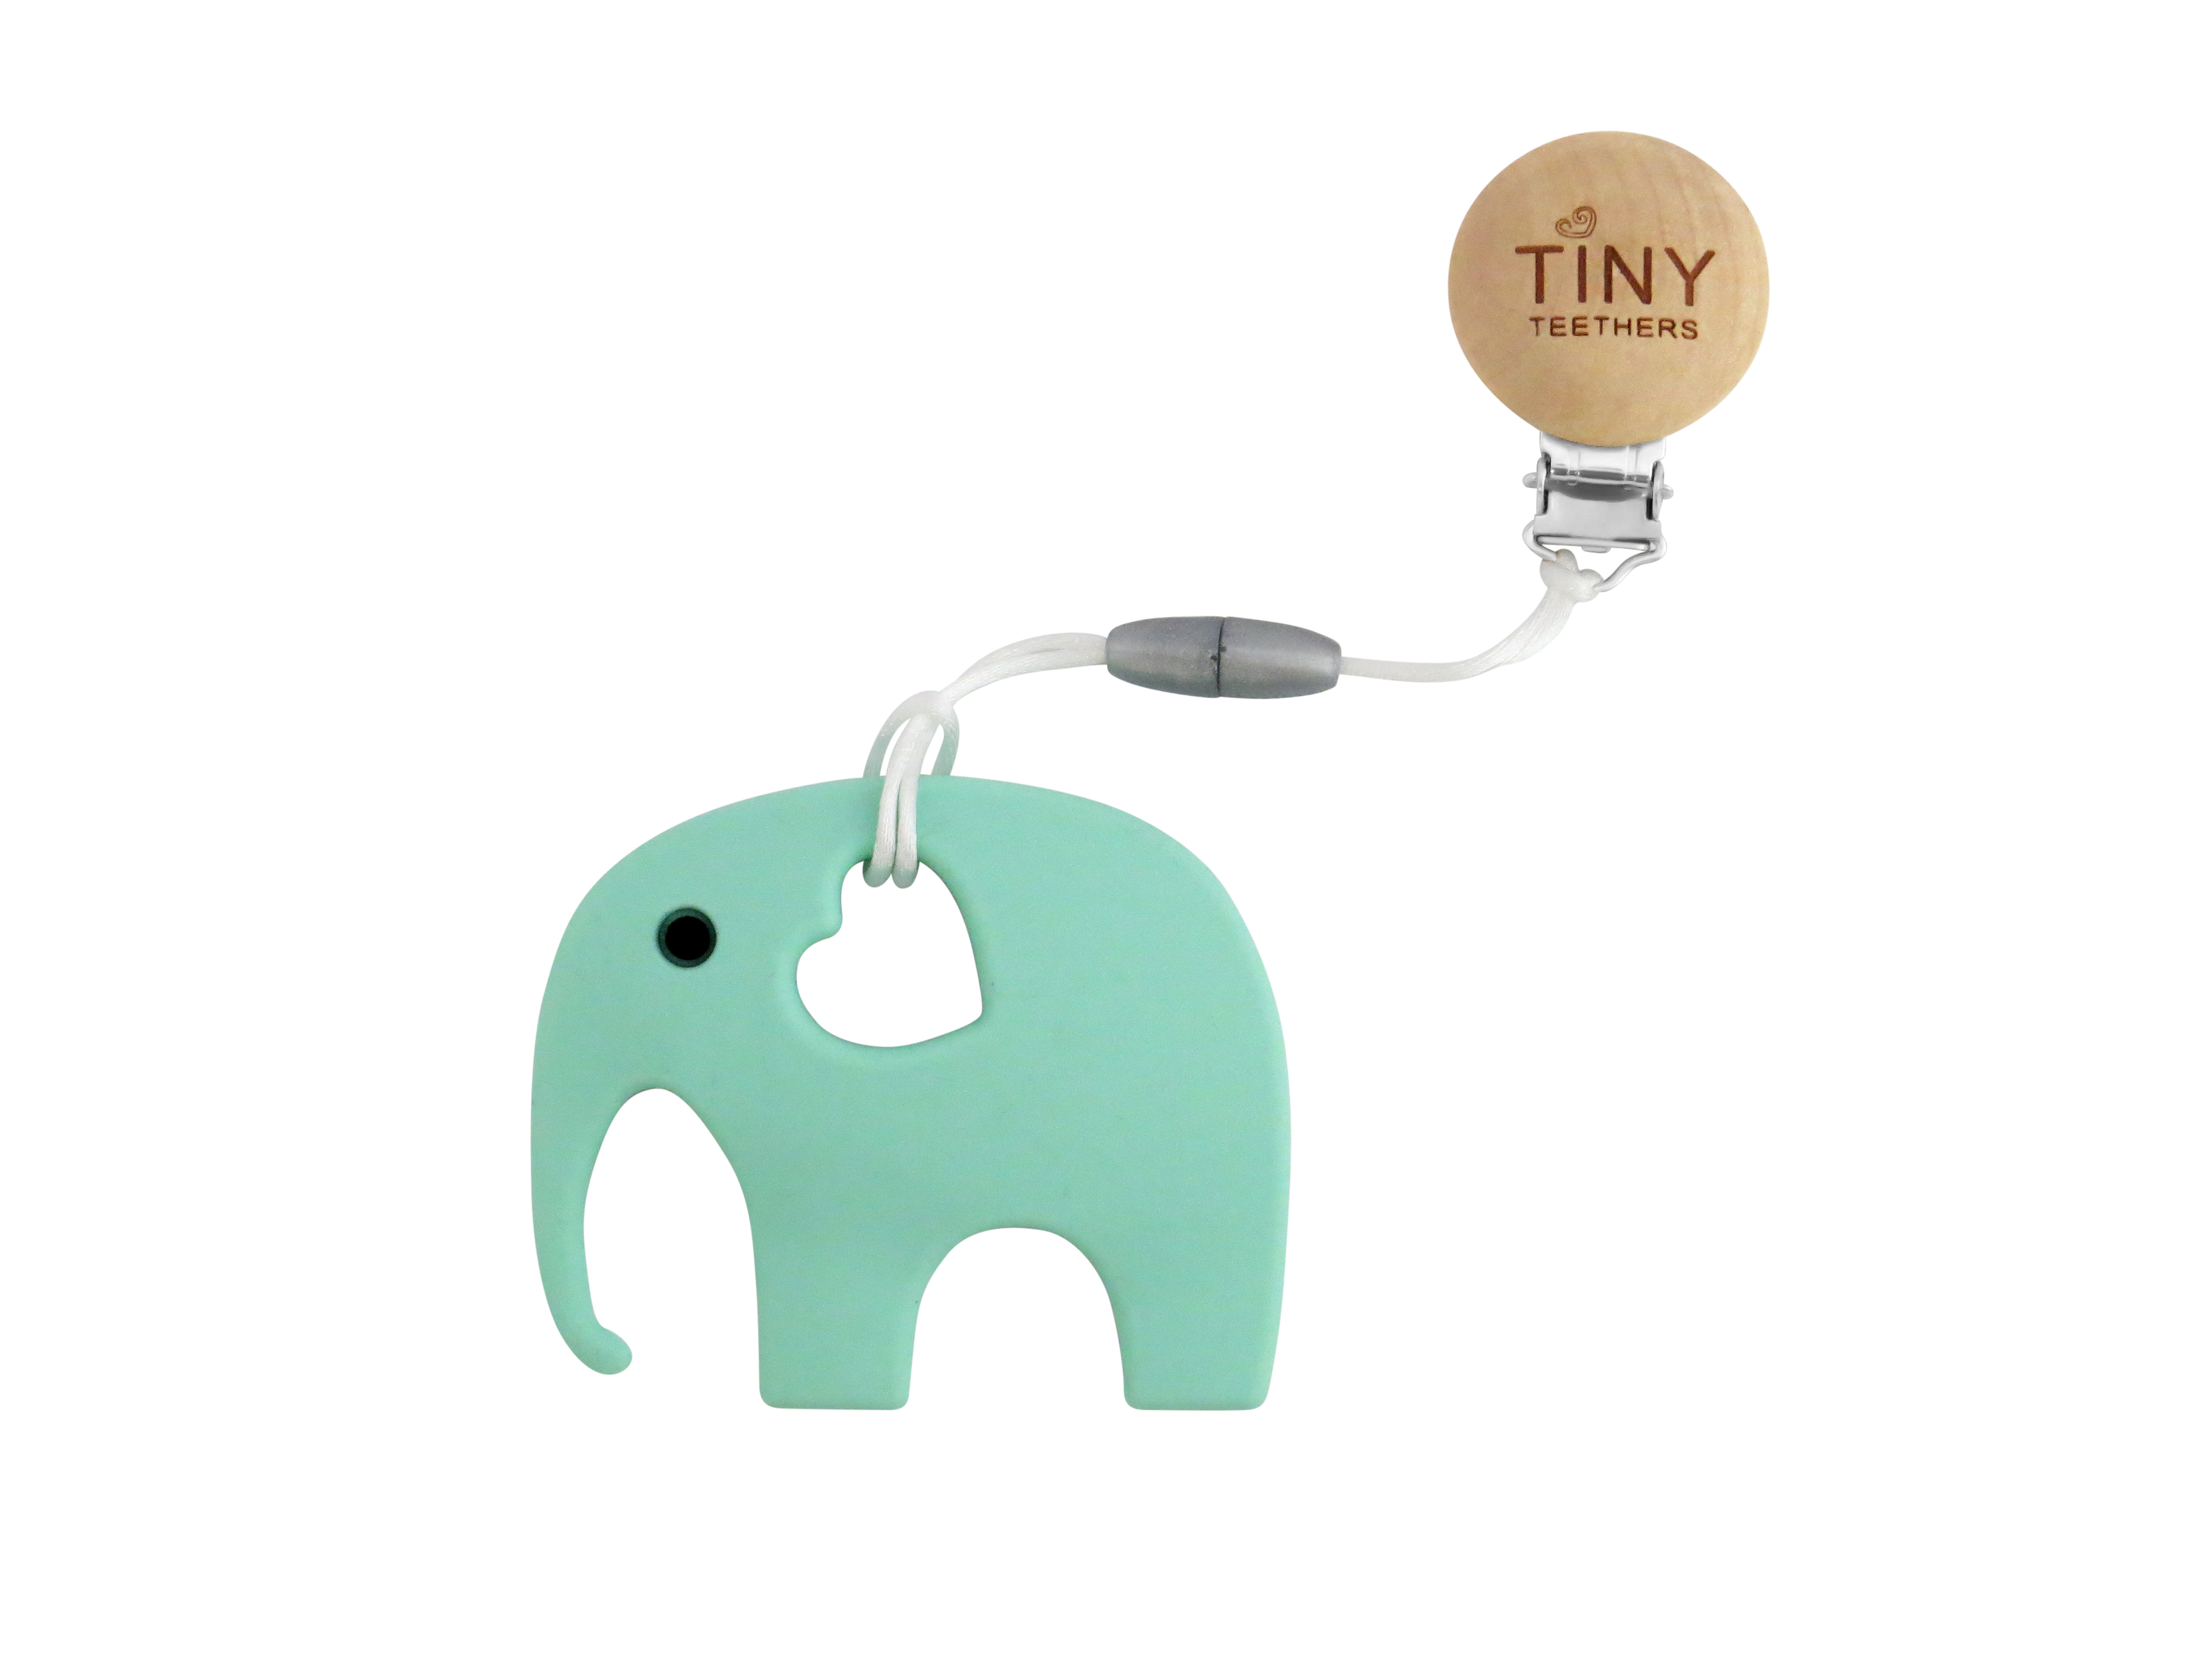 TINY TEETHERS TC003 SILICONE MINT ELEPHANT TEETHER